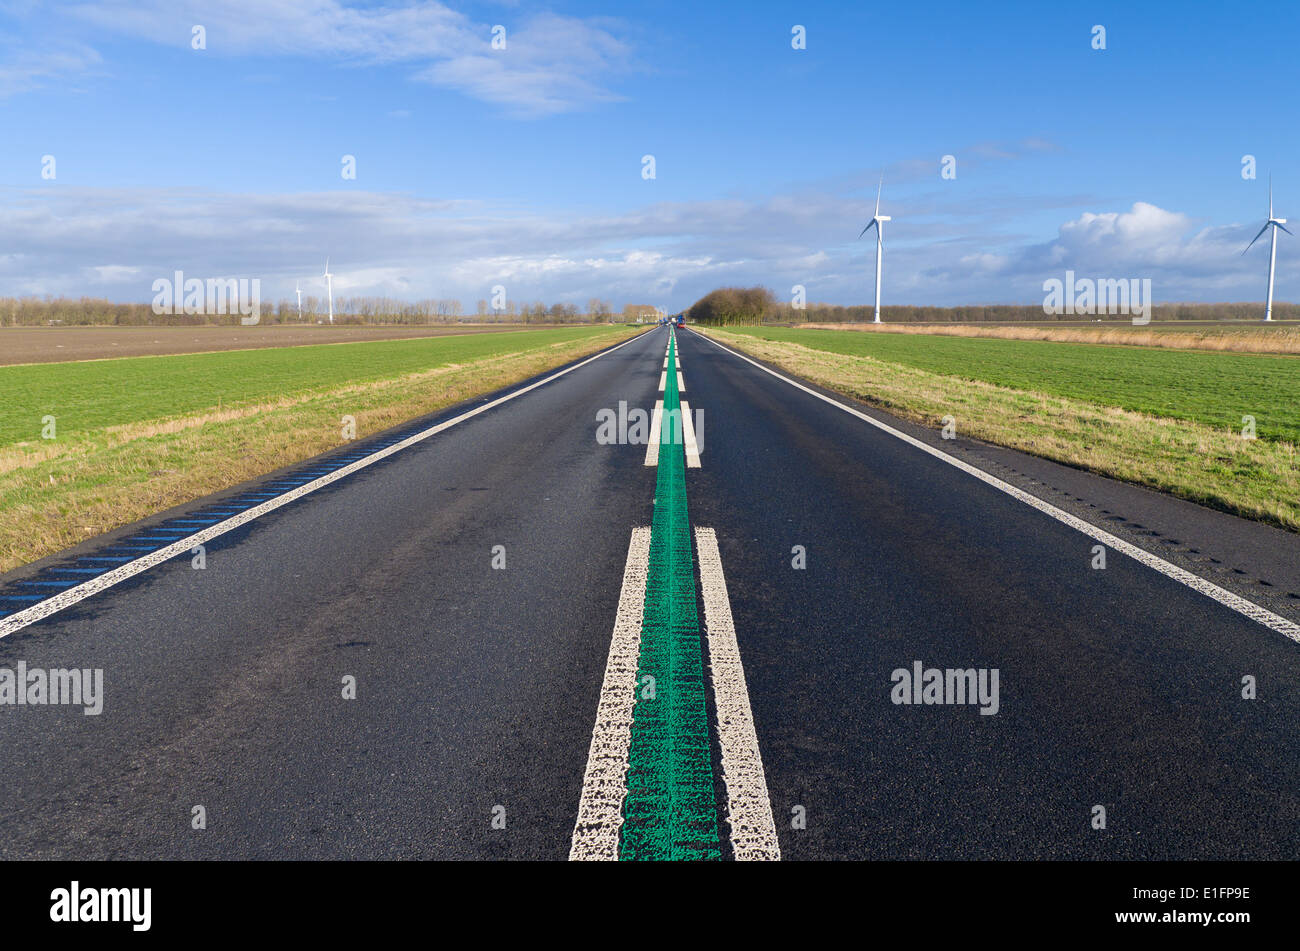 straight road in the netherlands  The green line in the